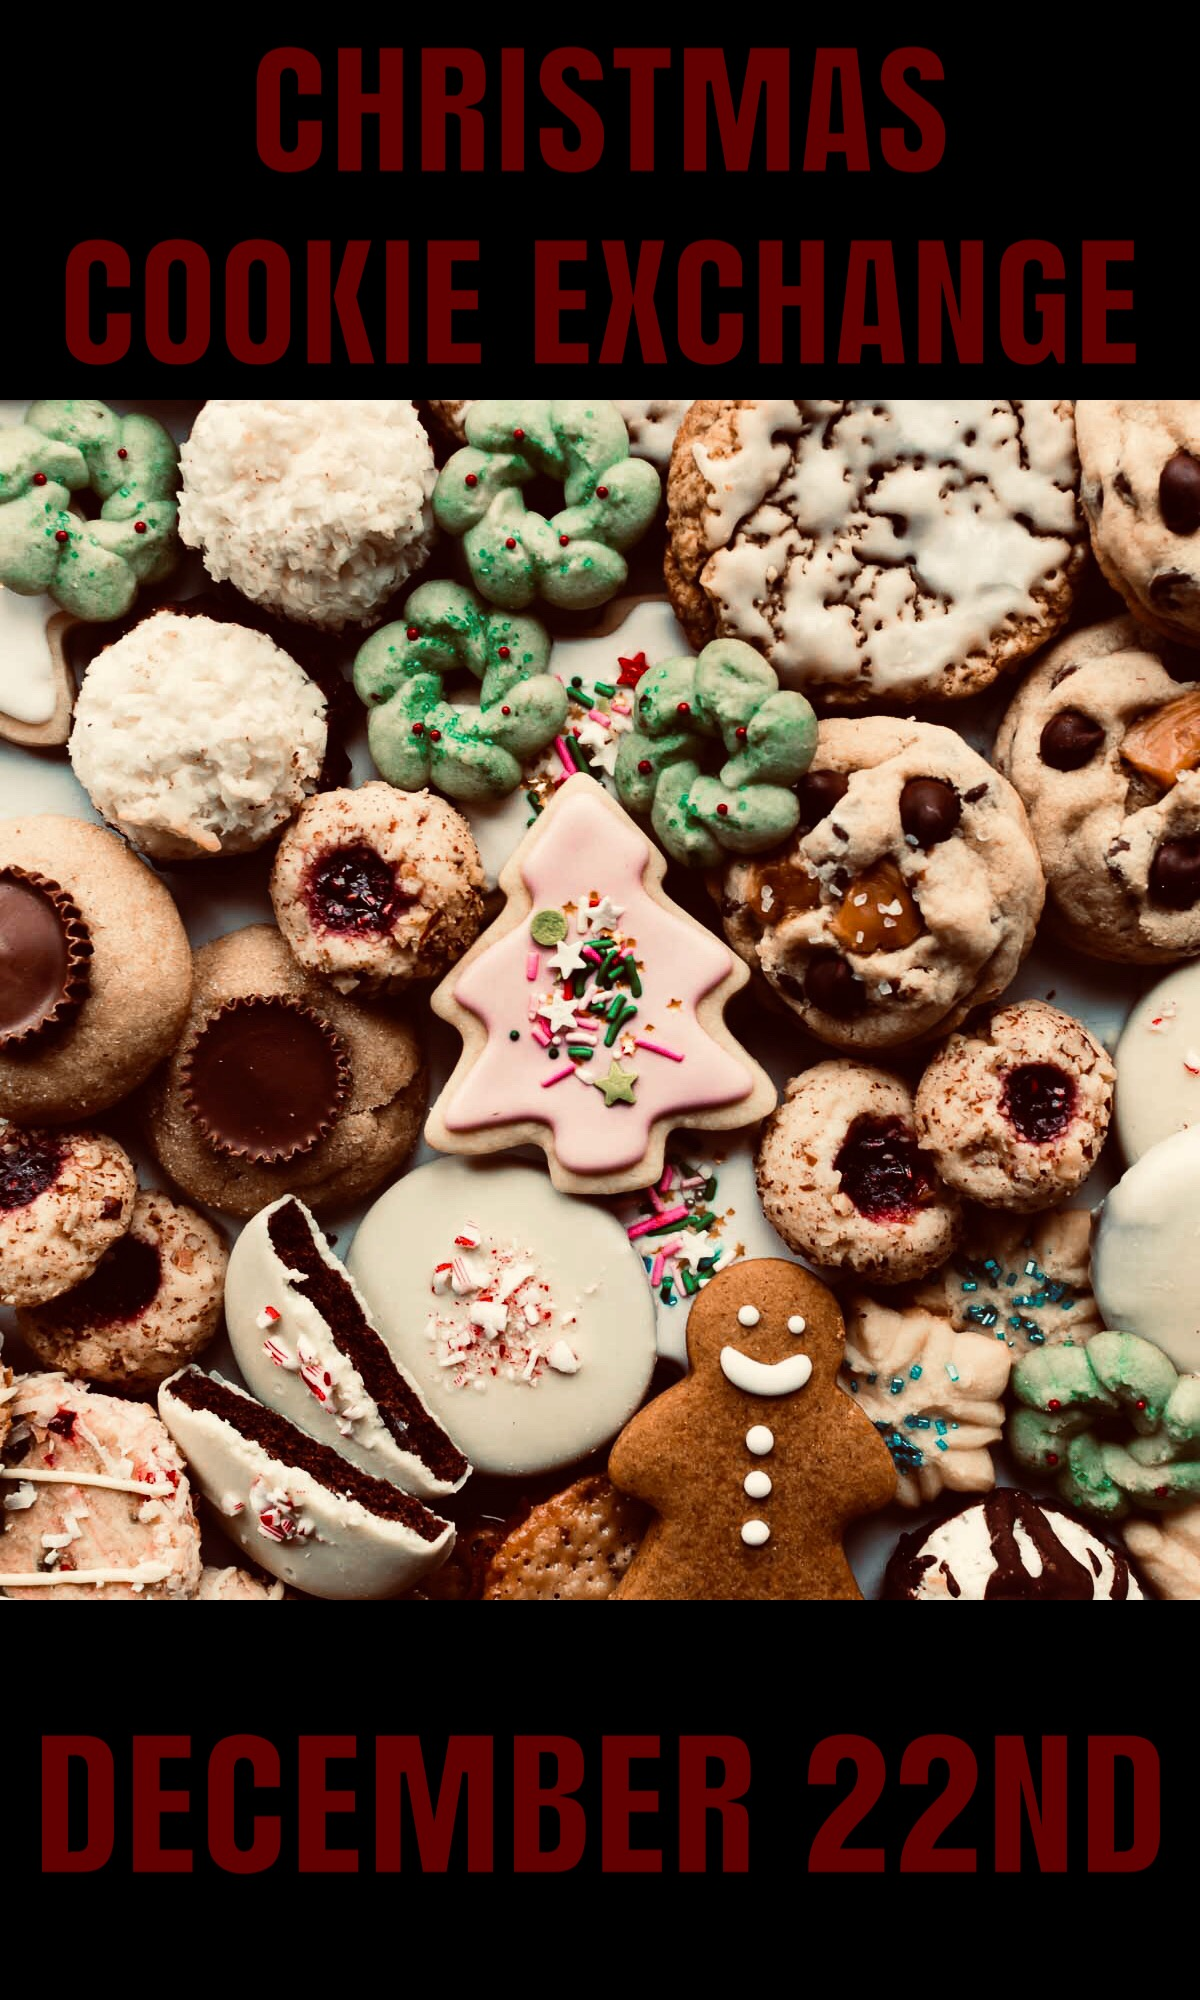 Christmas Cookie Exchange December 22